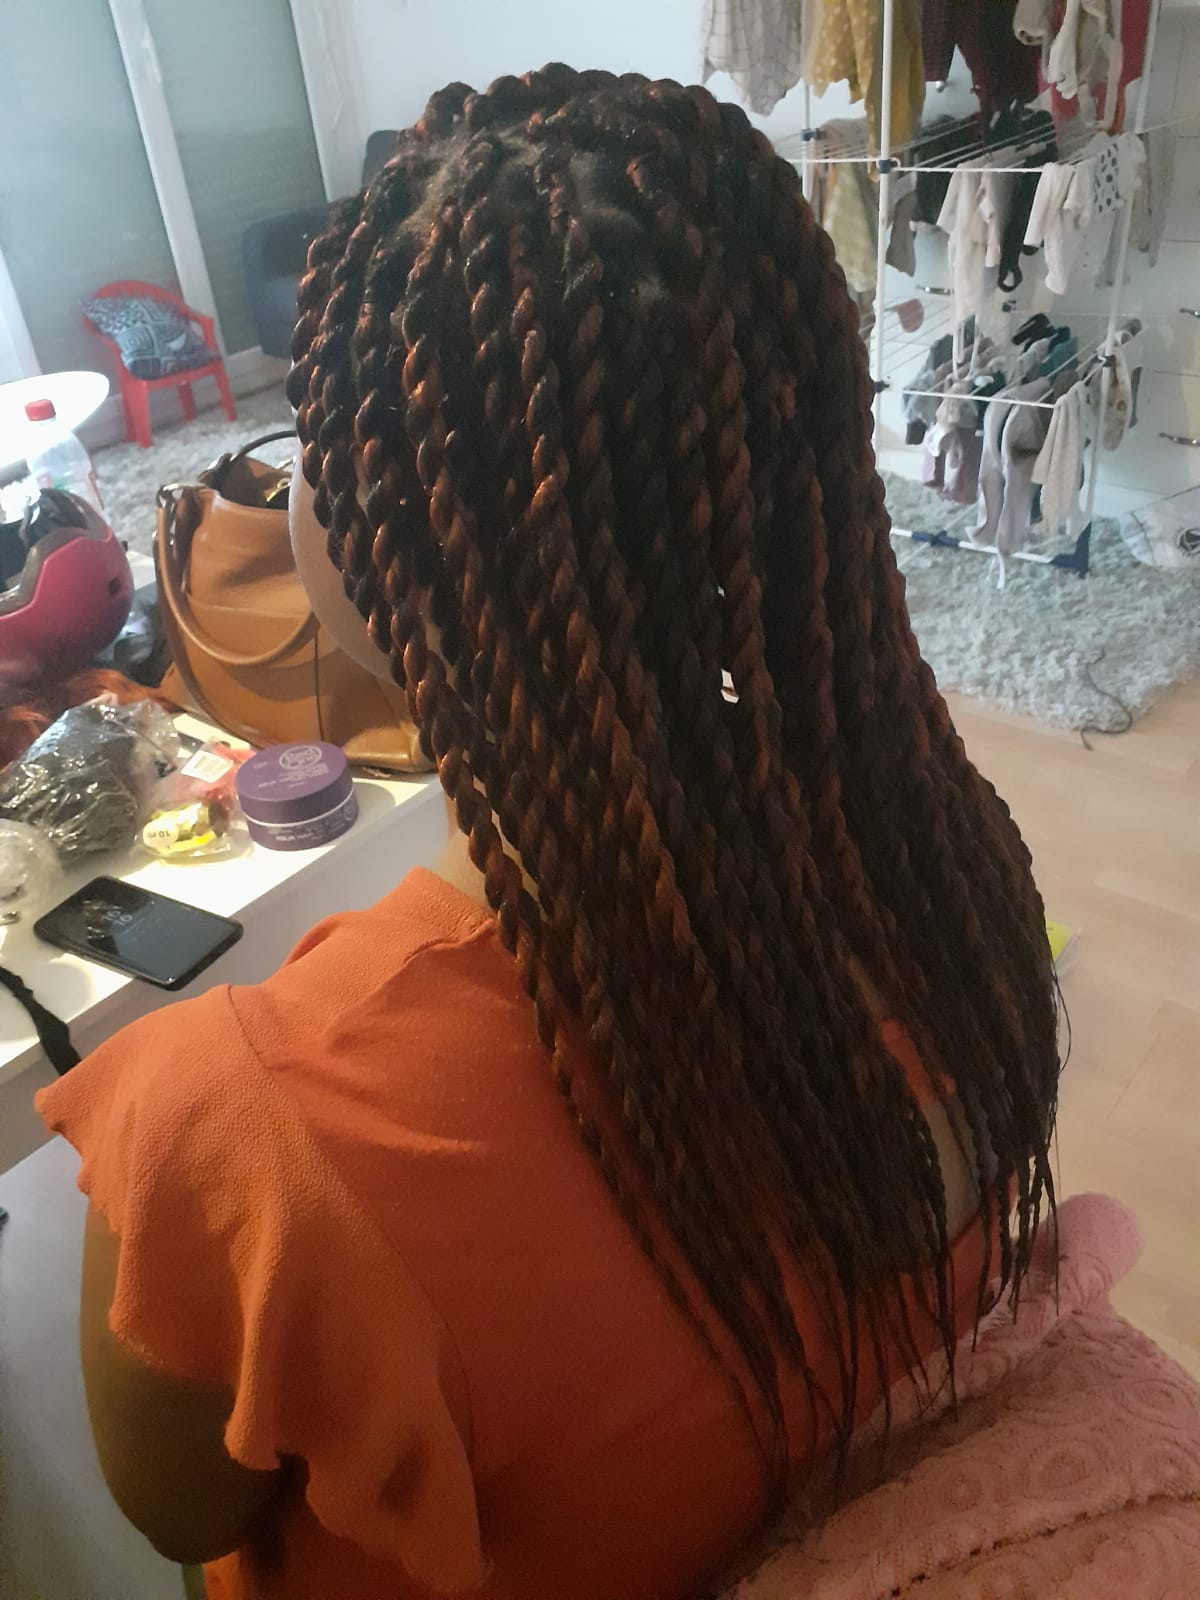 salon de coiffure afro tresse tresses box braids crochet braids vanilles tissages paris 75 77 78 91 92 93 94 95 XVKIVREO